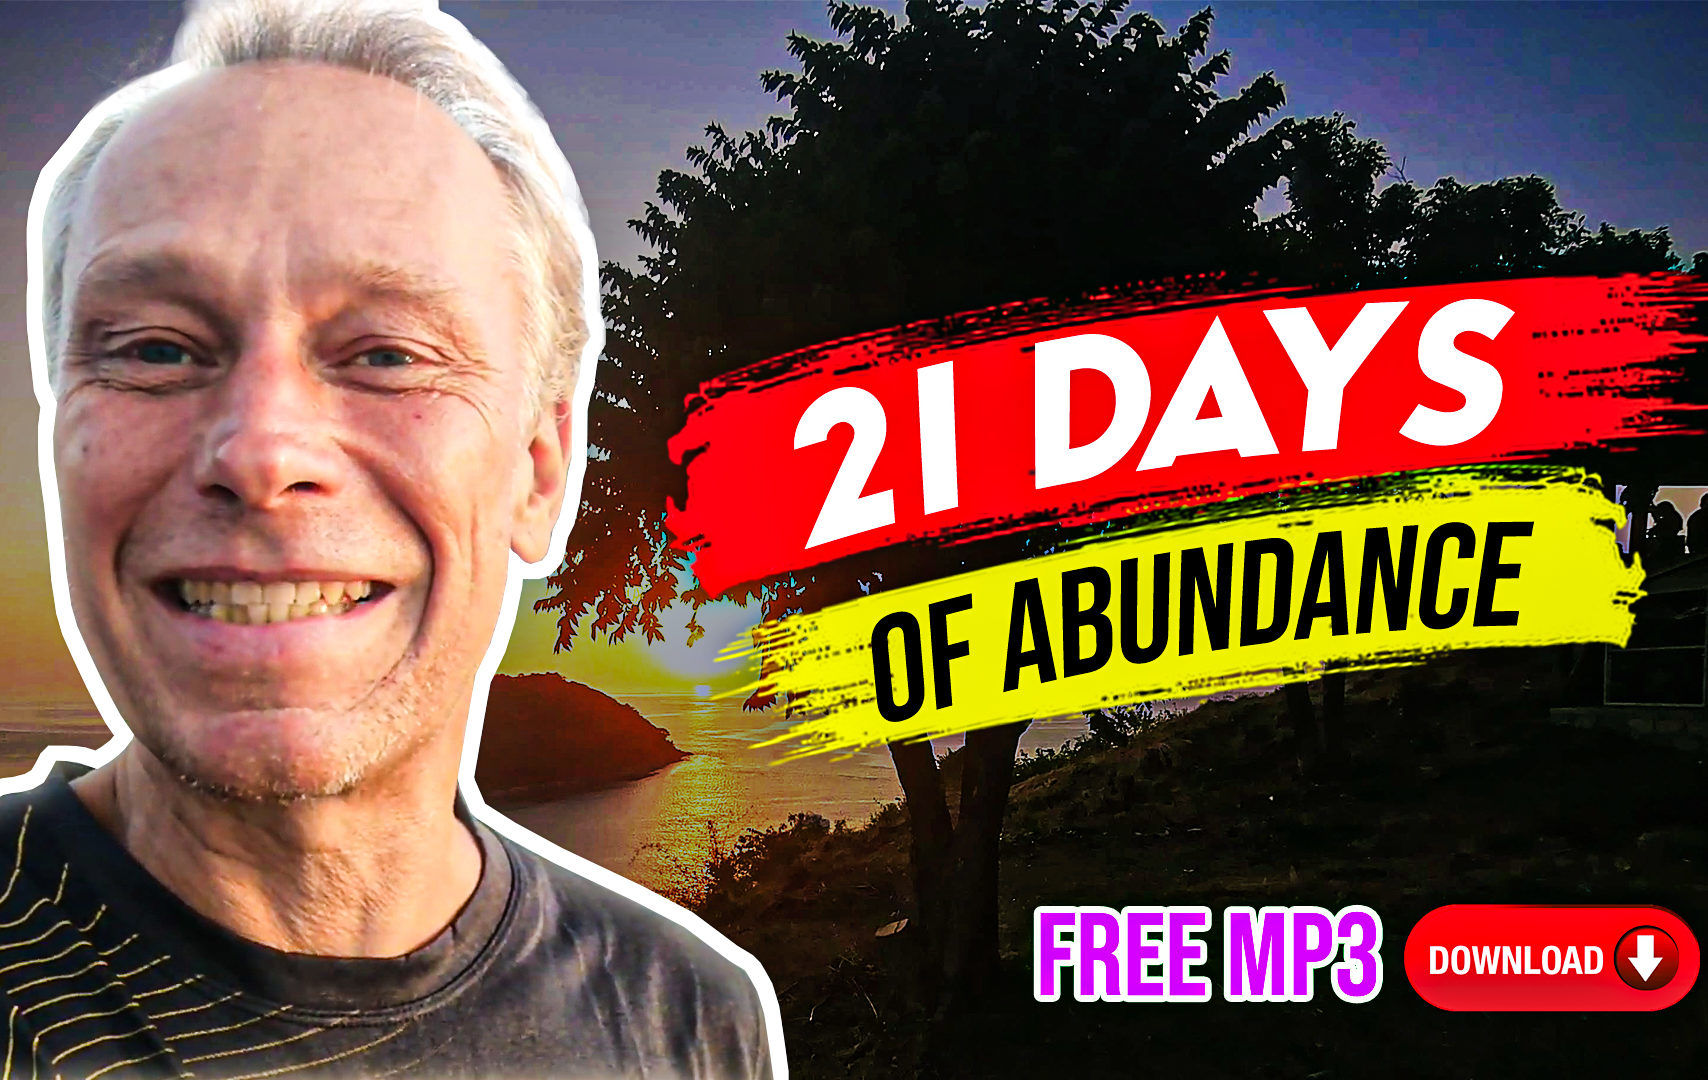 Start YOUR 21 Days of Abundance - Today!